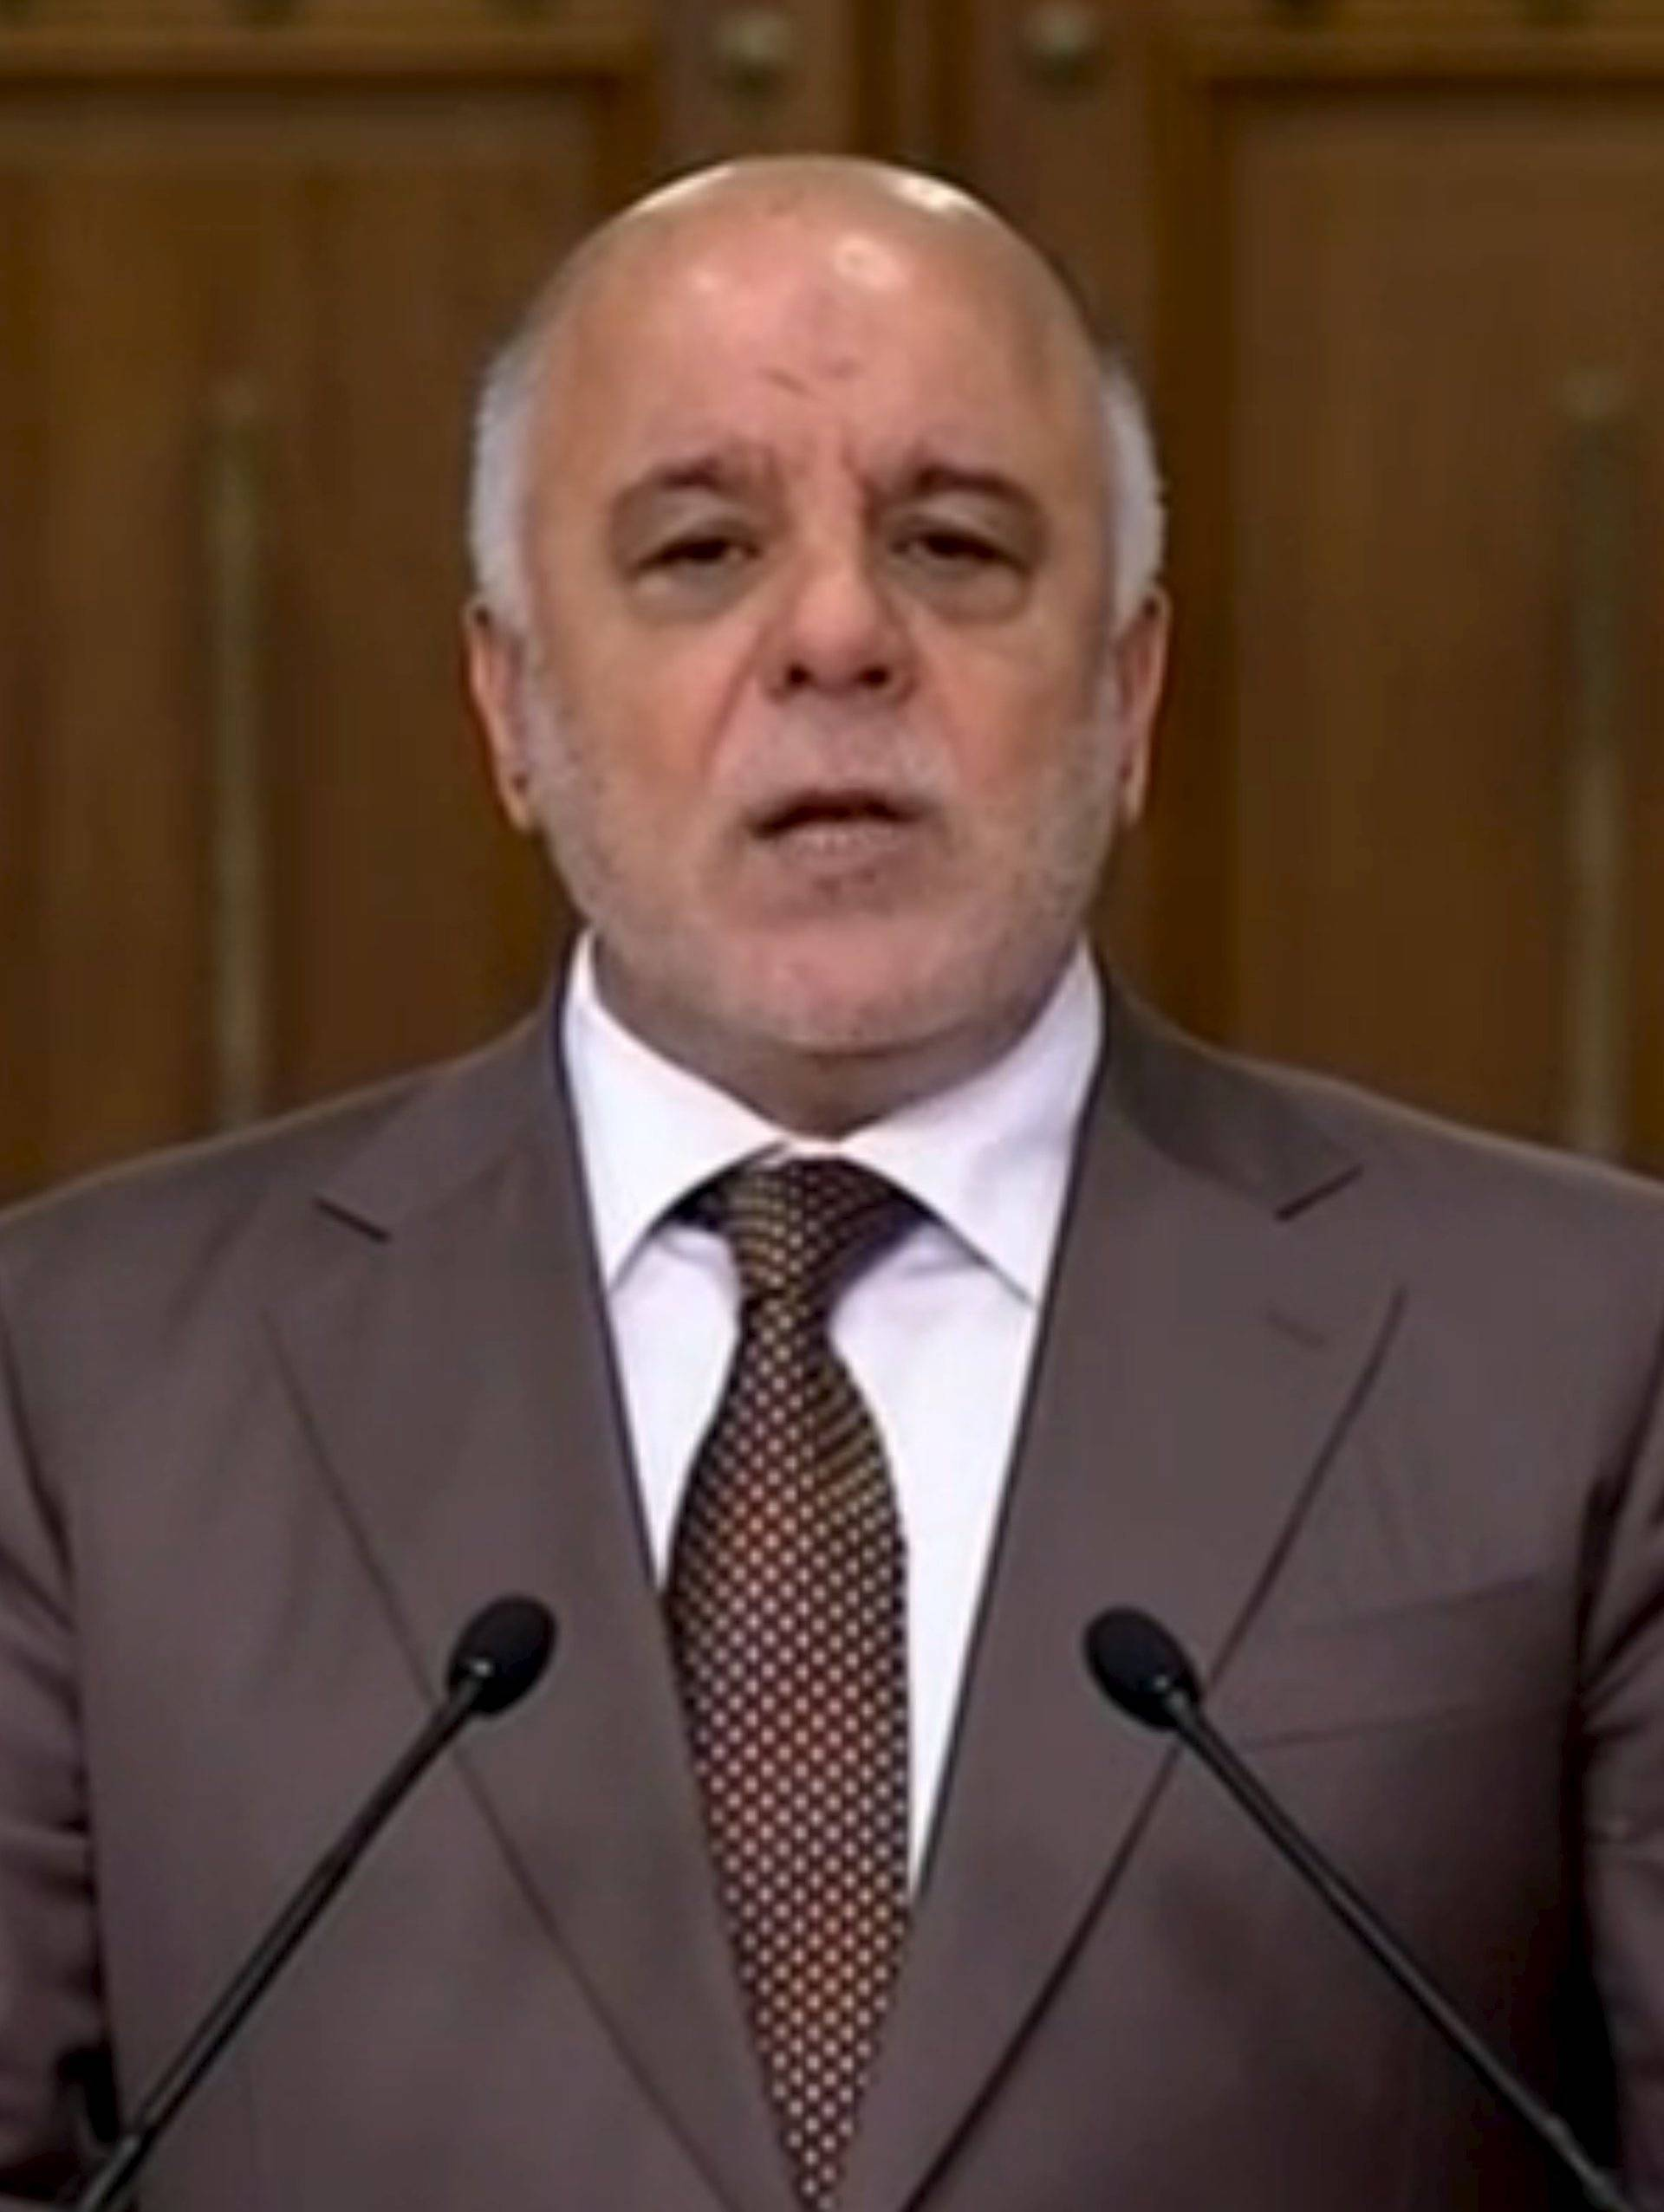 Iraqi Prime Minister Haider al-Abadi speaks during a news conference in Baghdad